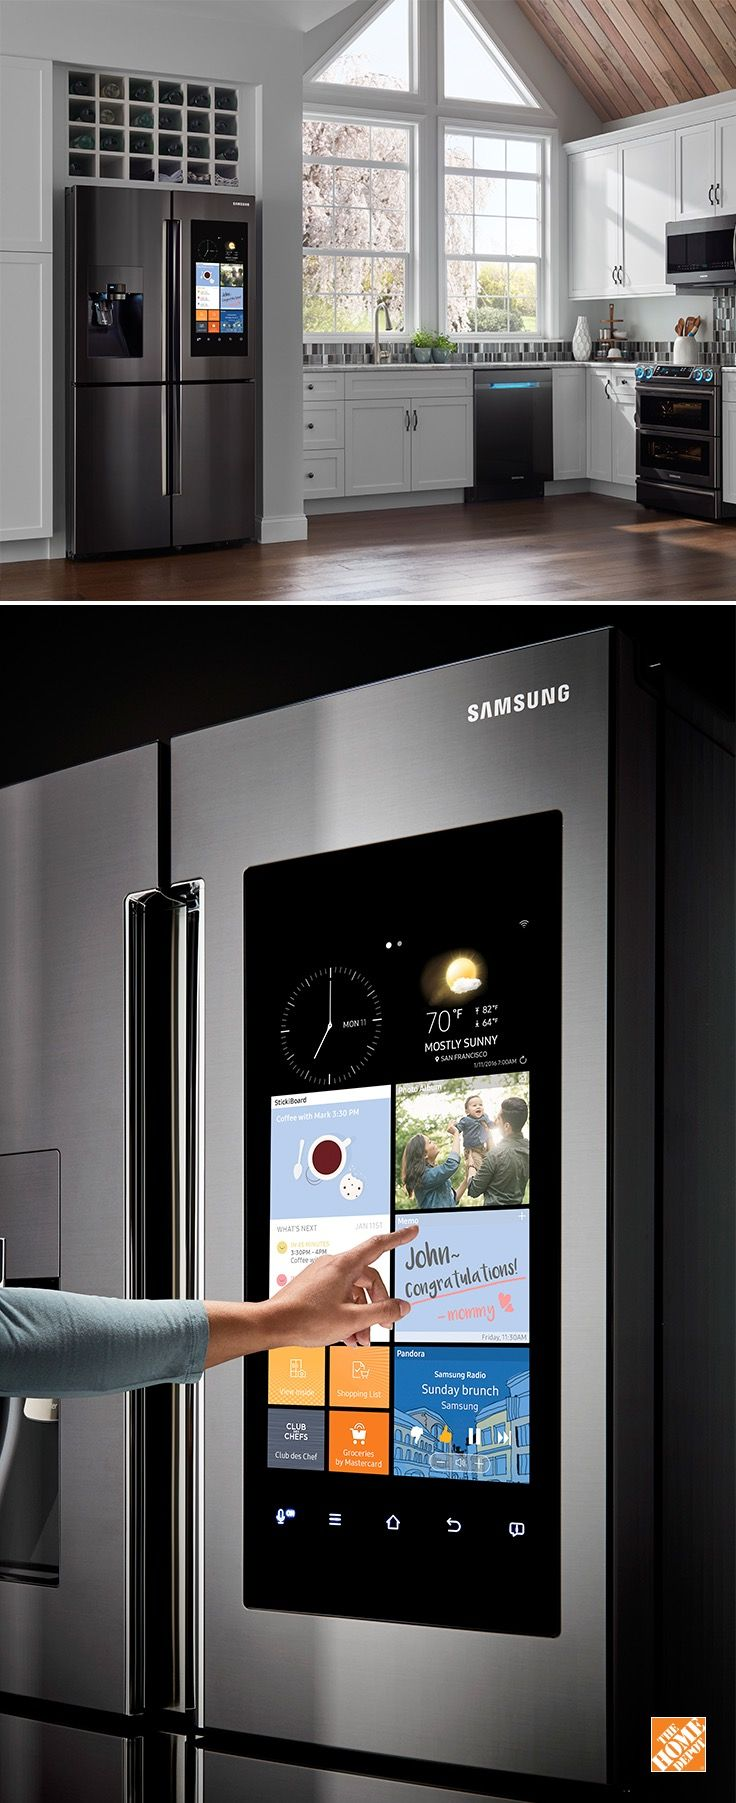 Samsung 27 9 Cu Ft Family Hub 4 Door Flex French Door Refrigerator In Stainless Steel Rf28k9580sr The Home Depot Home Home Decor Home Kitchens